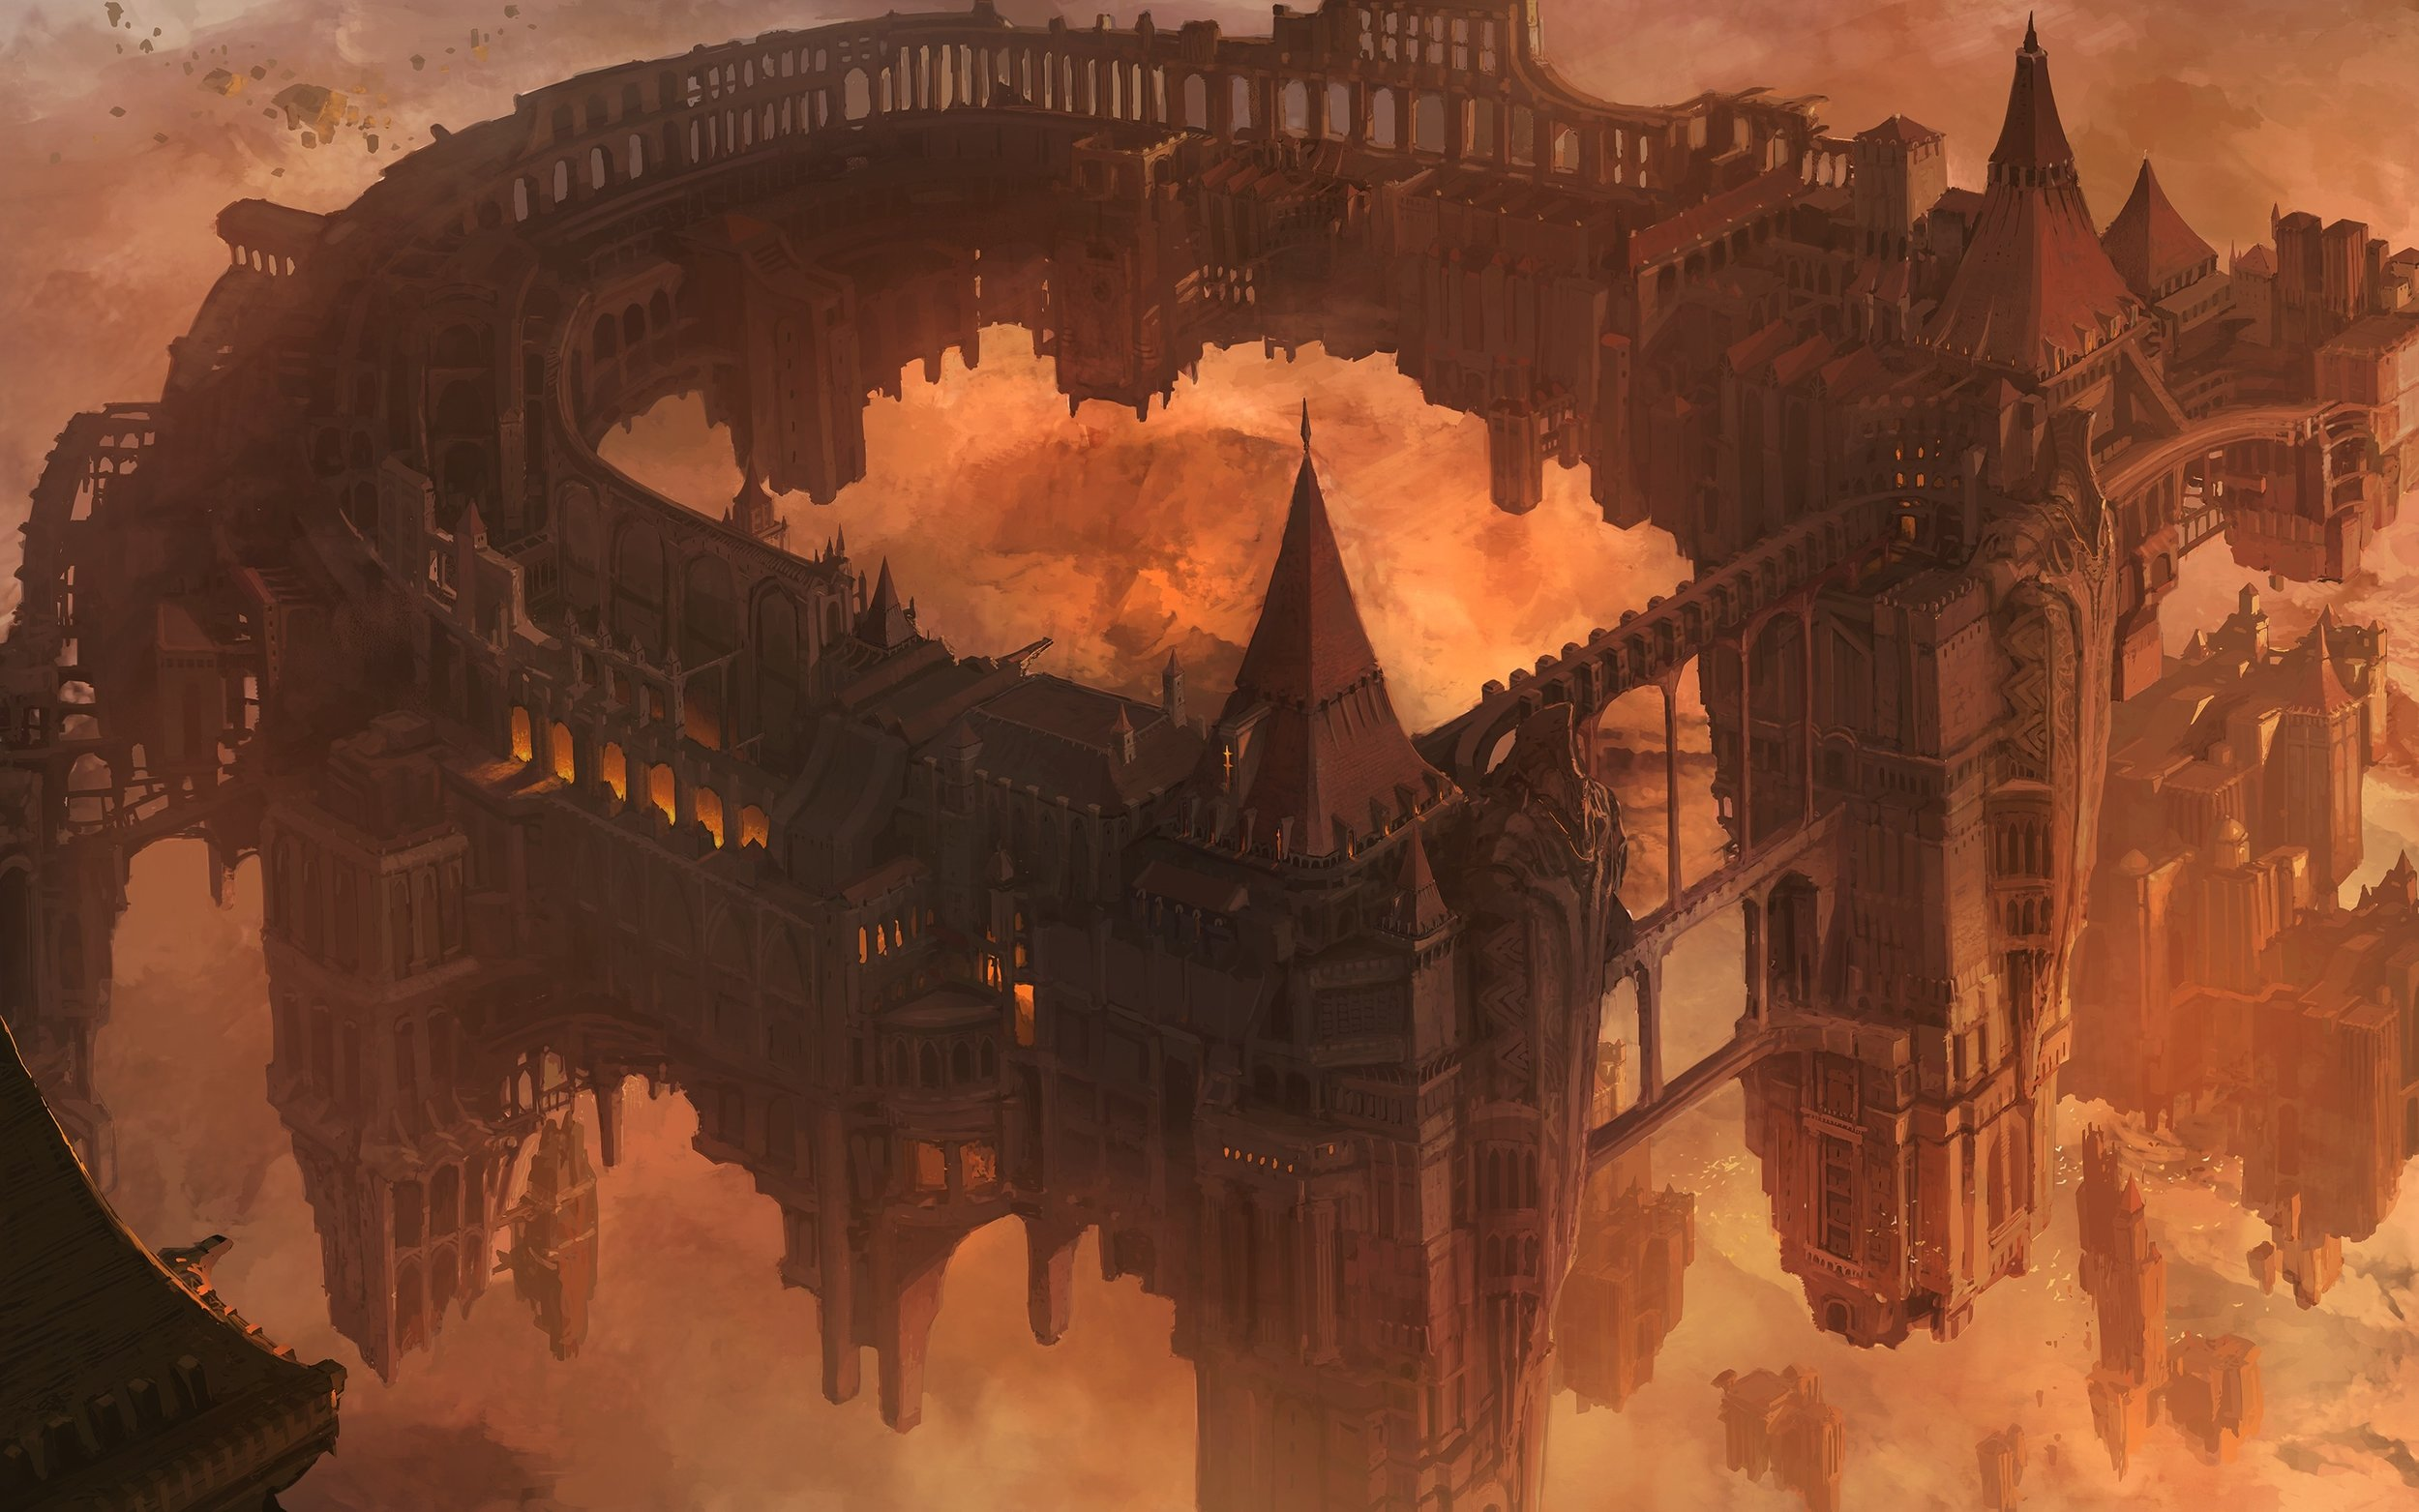 1452-kingdom-in-the-clouds-dongick-lee